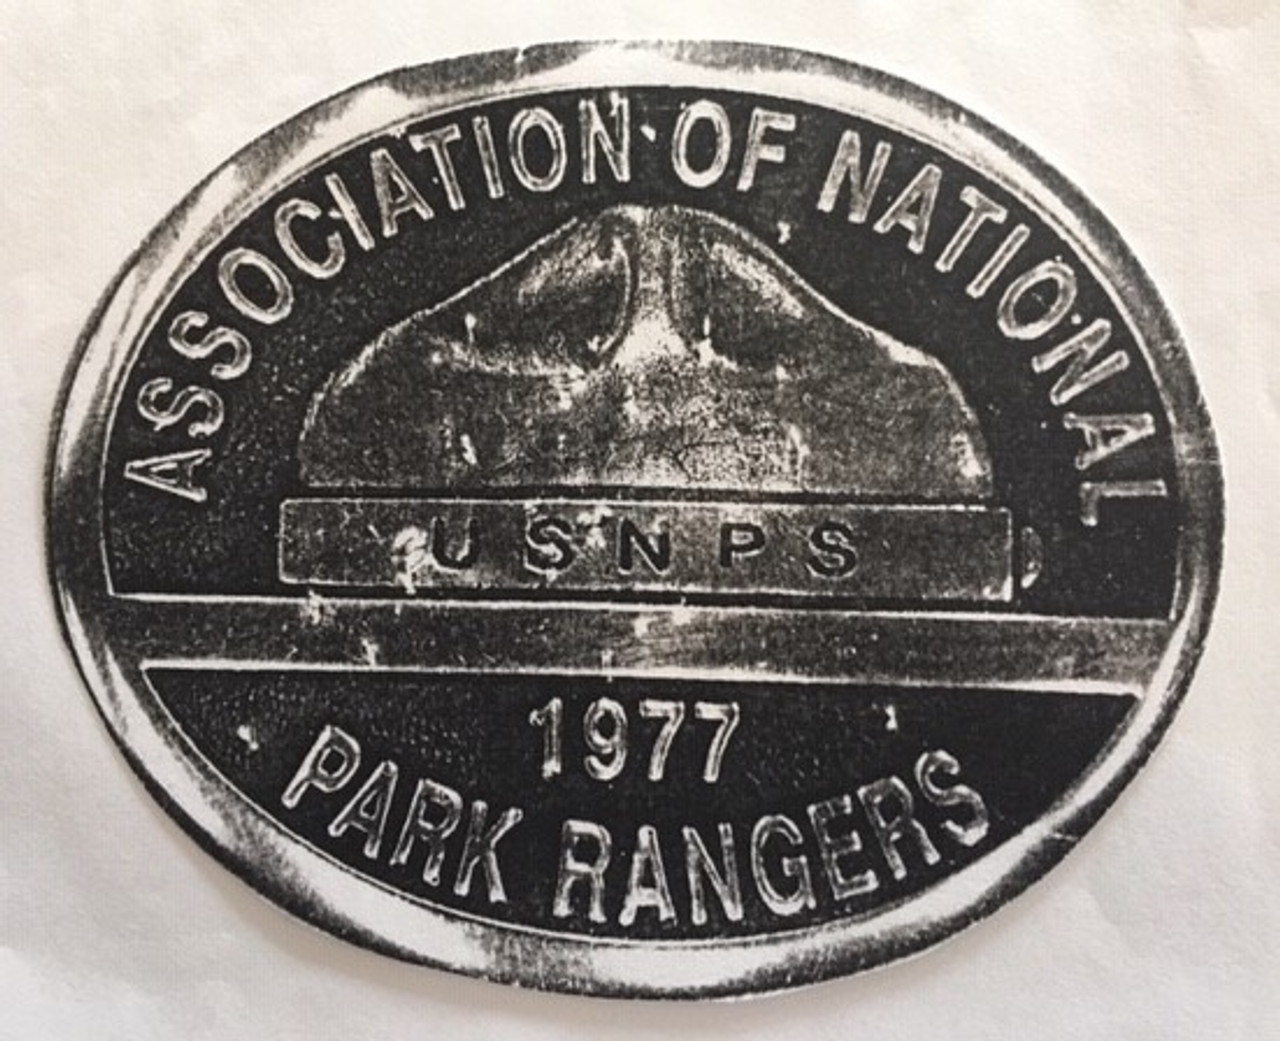 Association of National Park Rangers Buckle